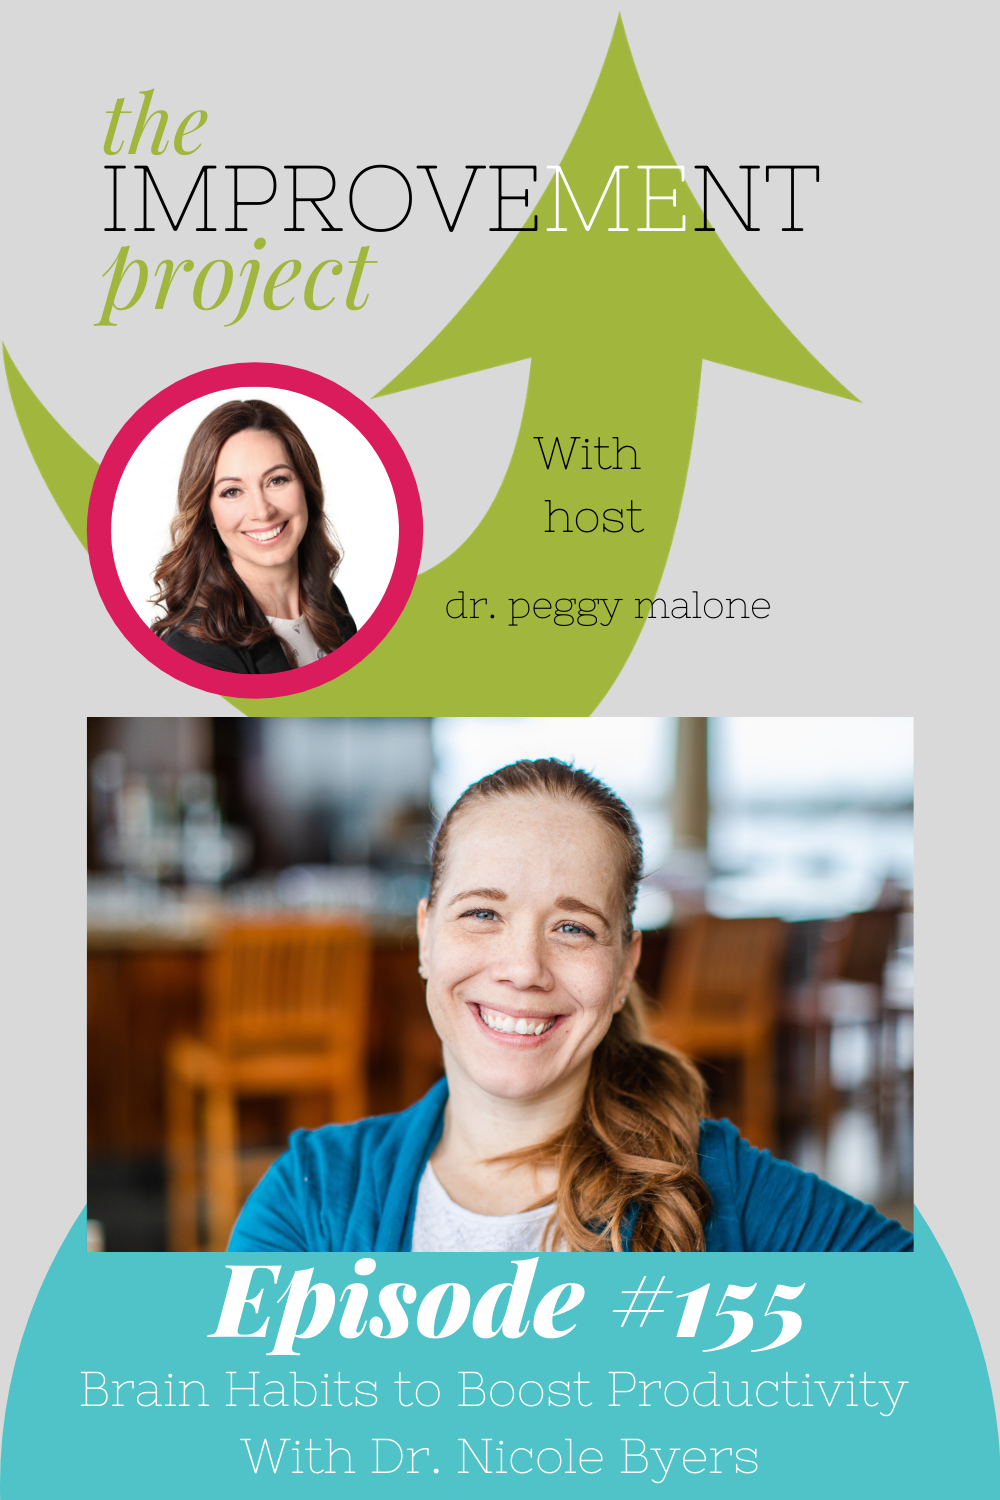 Brain Habits to Boost Productivity With Dr. Nicole Byers